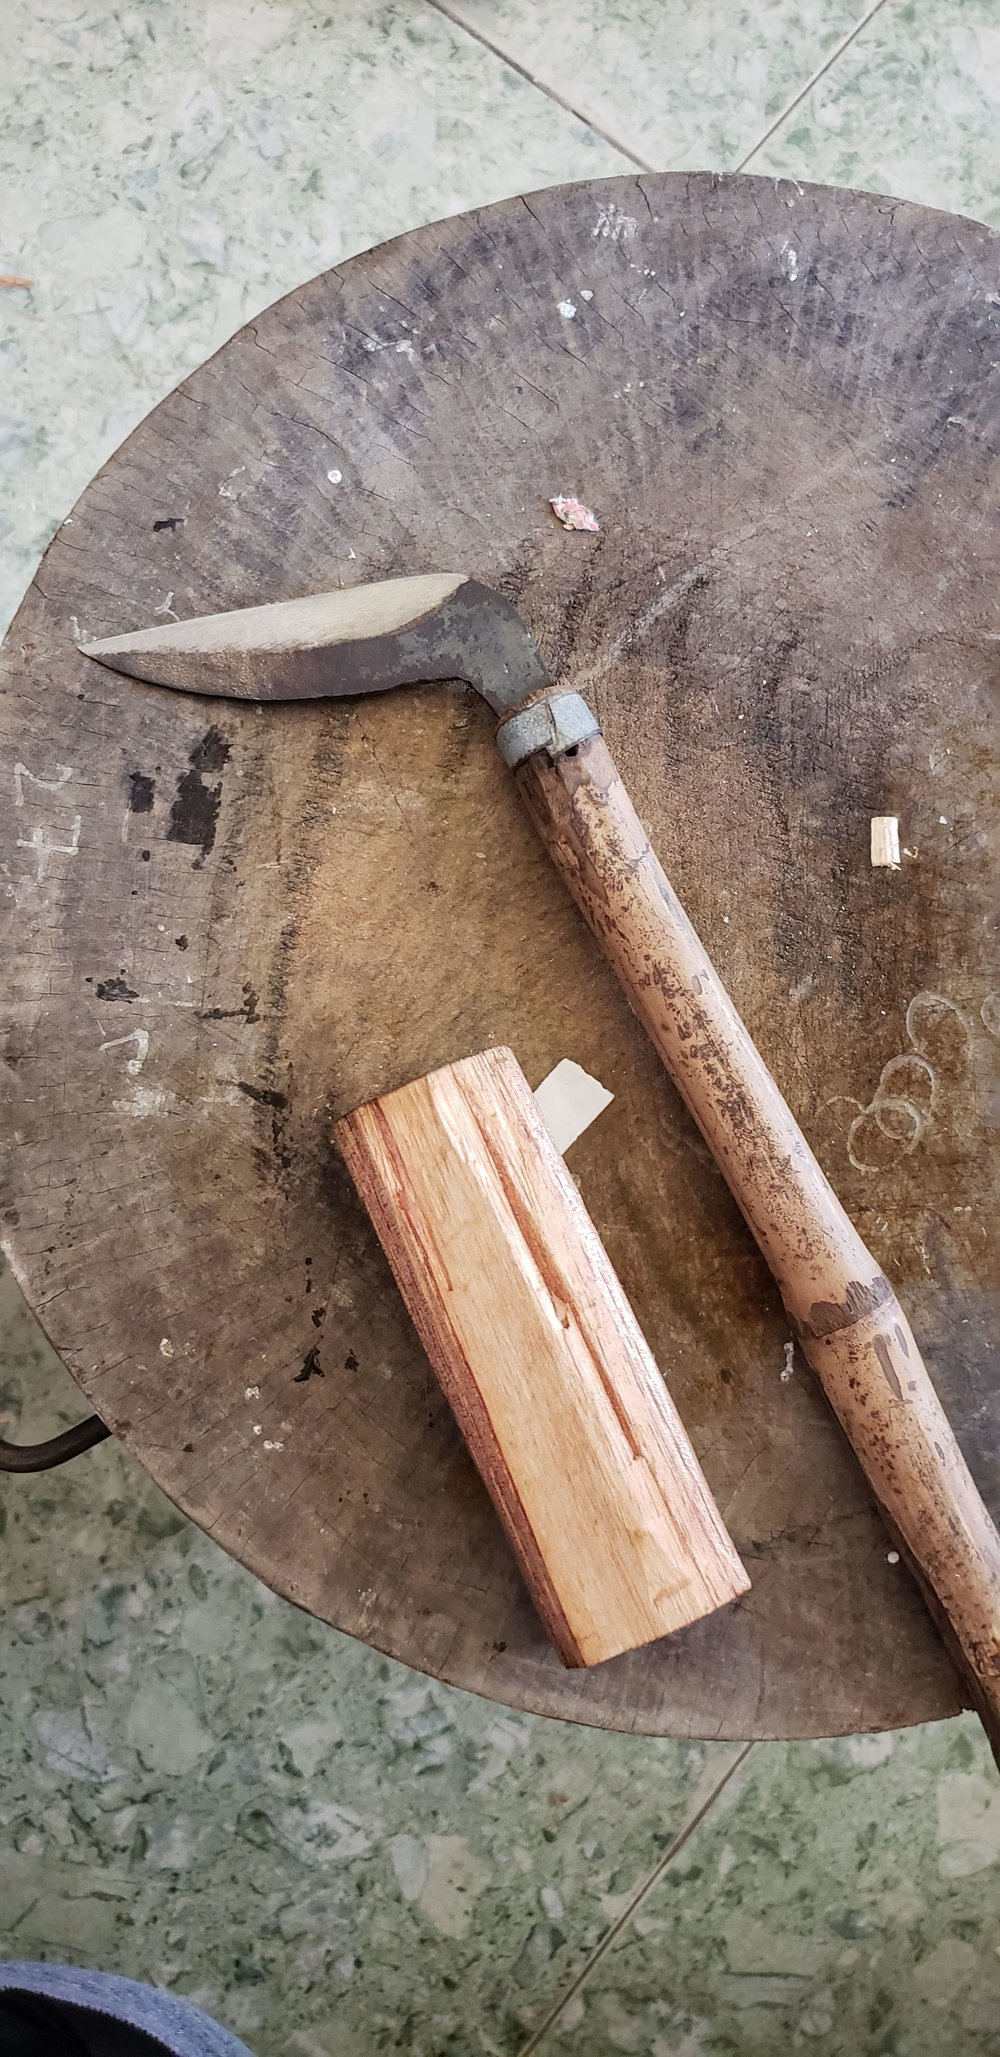 The block of wood for the handle and the knife to carve it